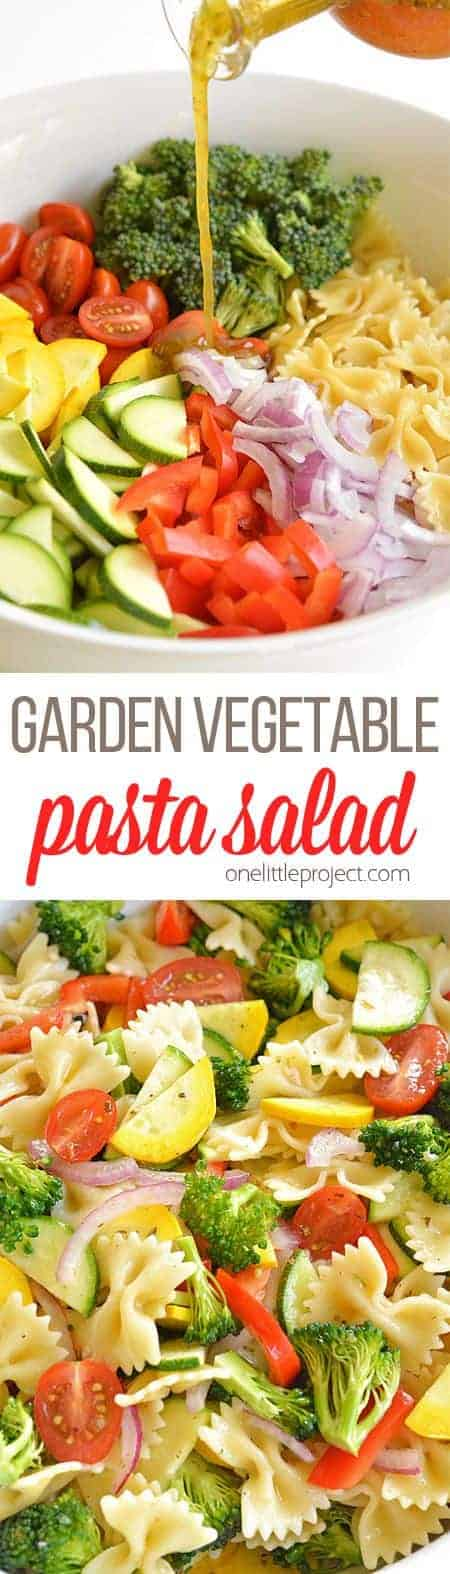 Garden Vegetable Pasta Salad | The best pasta salad recipes for summer!